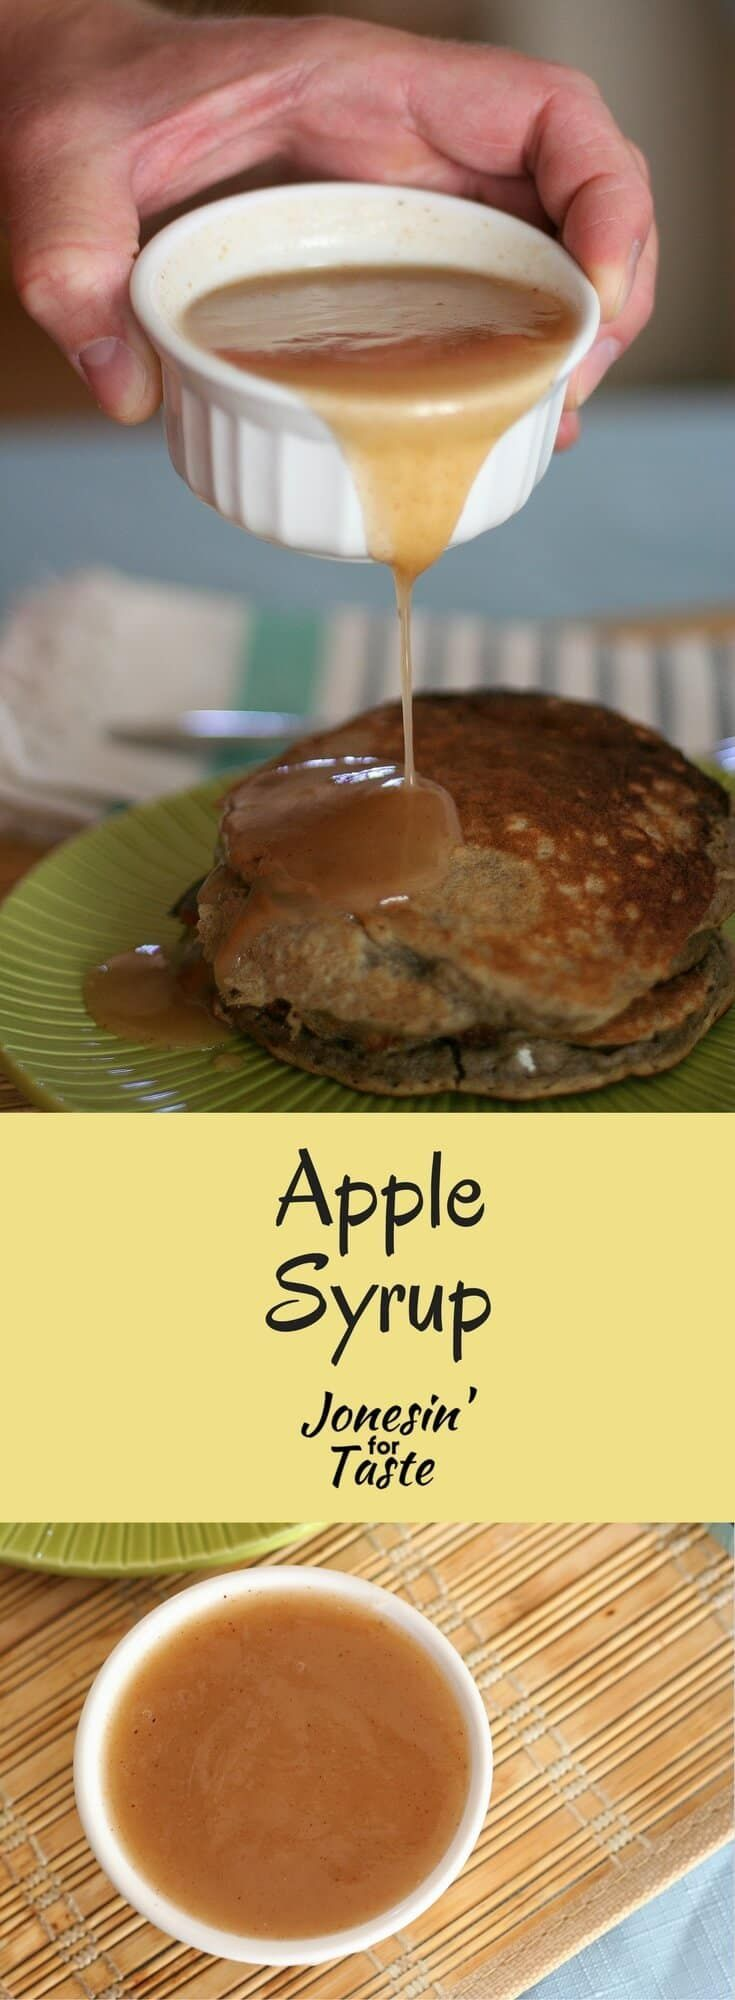 Apple syrup is a quick homemade syrup made with apple juice, Bisquik mix, and cinnamon that is delicious over pancakes.   via @jonesinfortaste